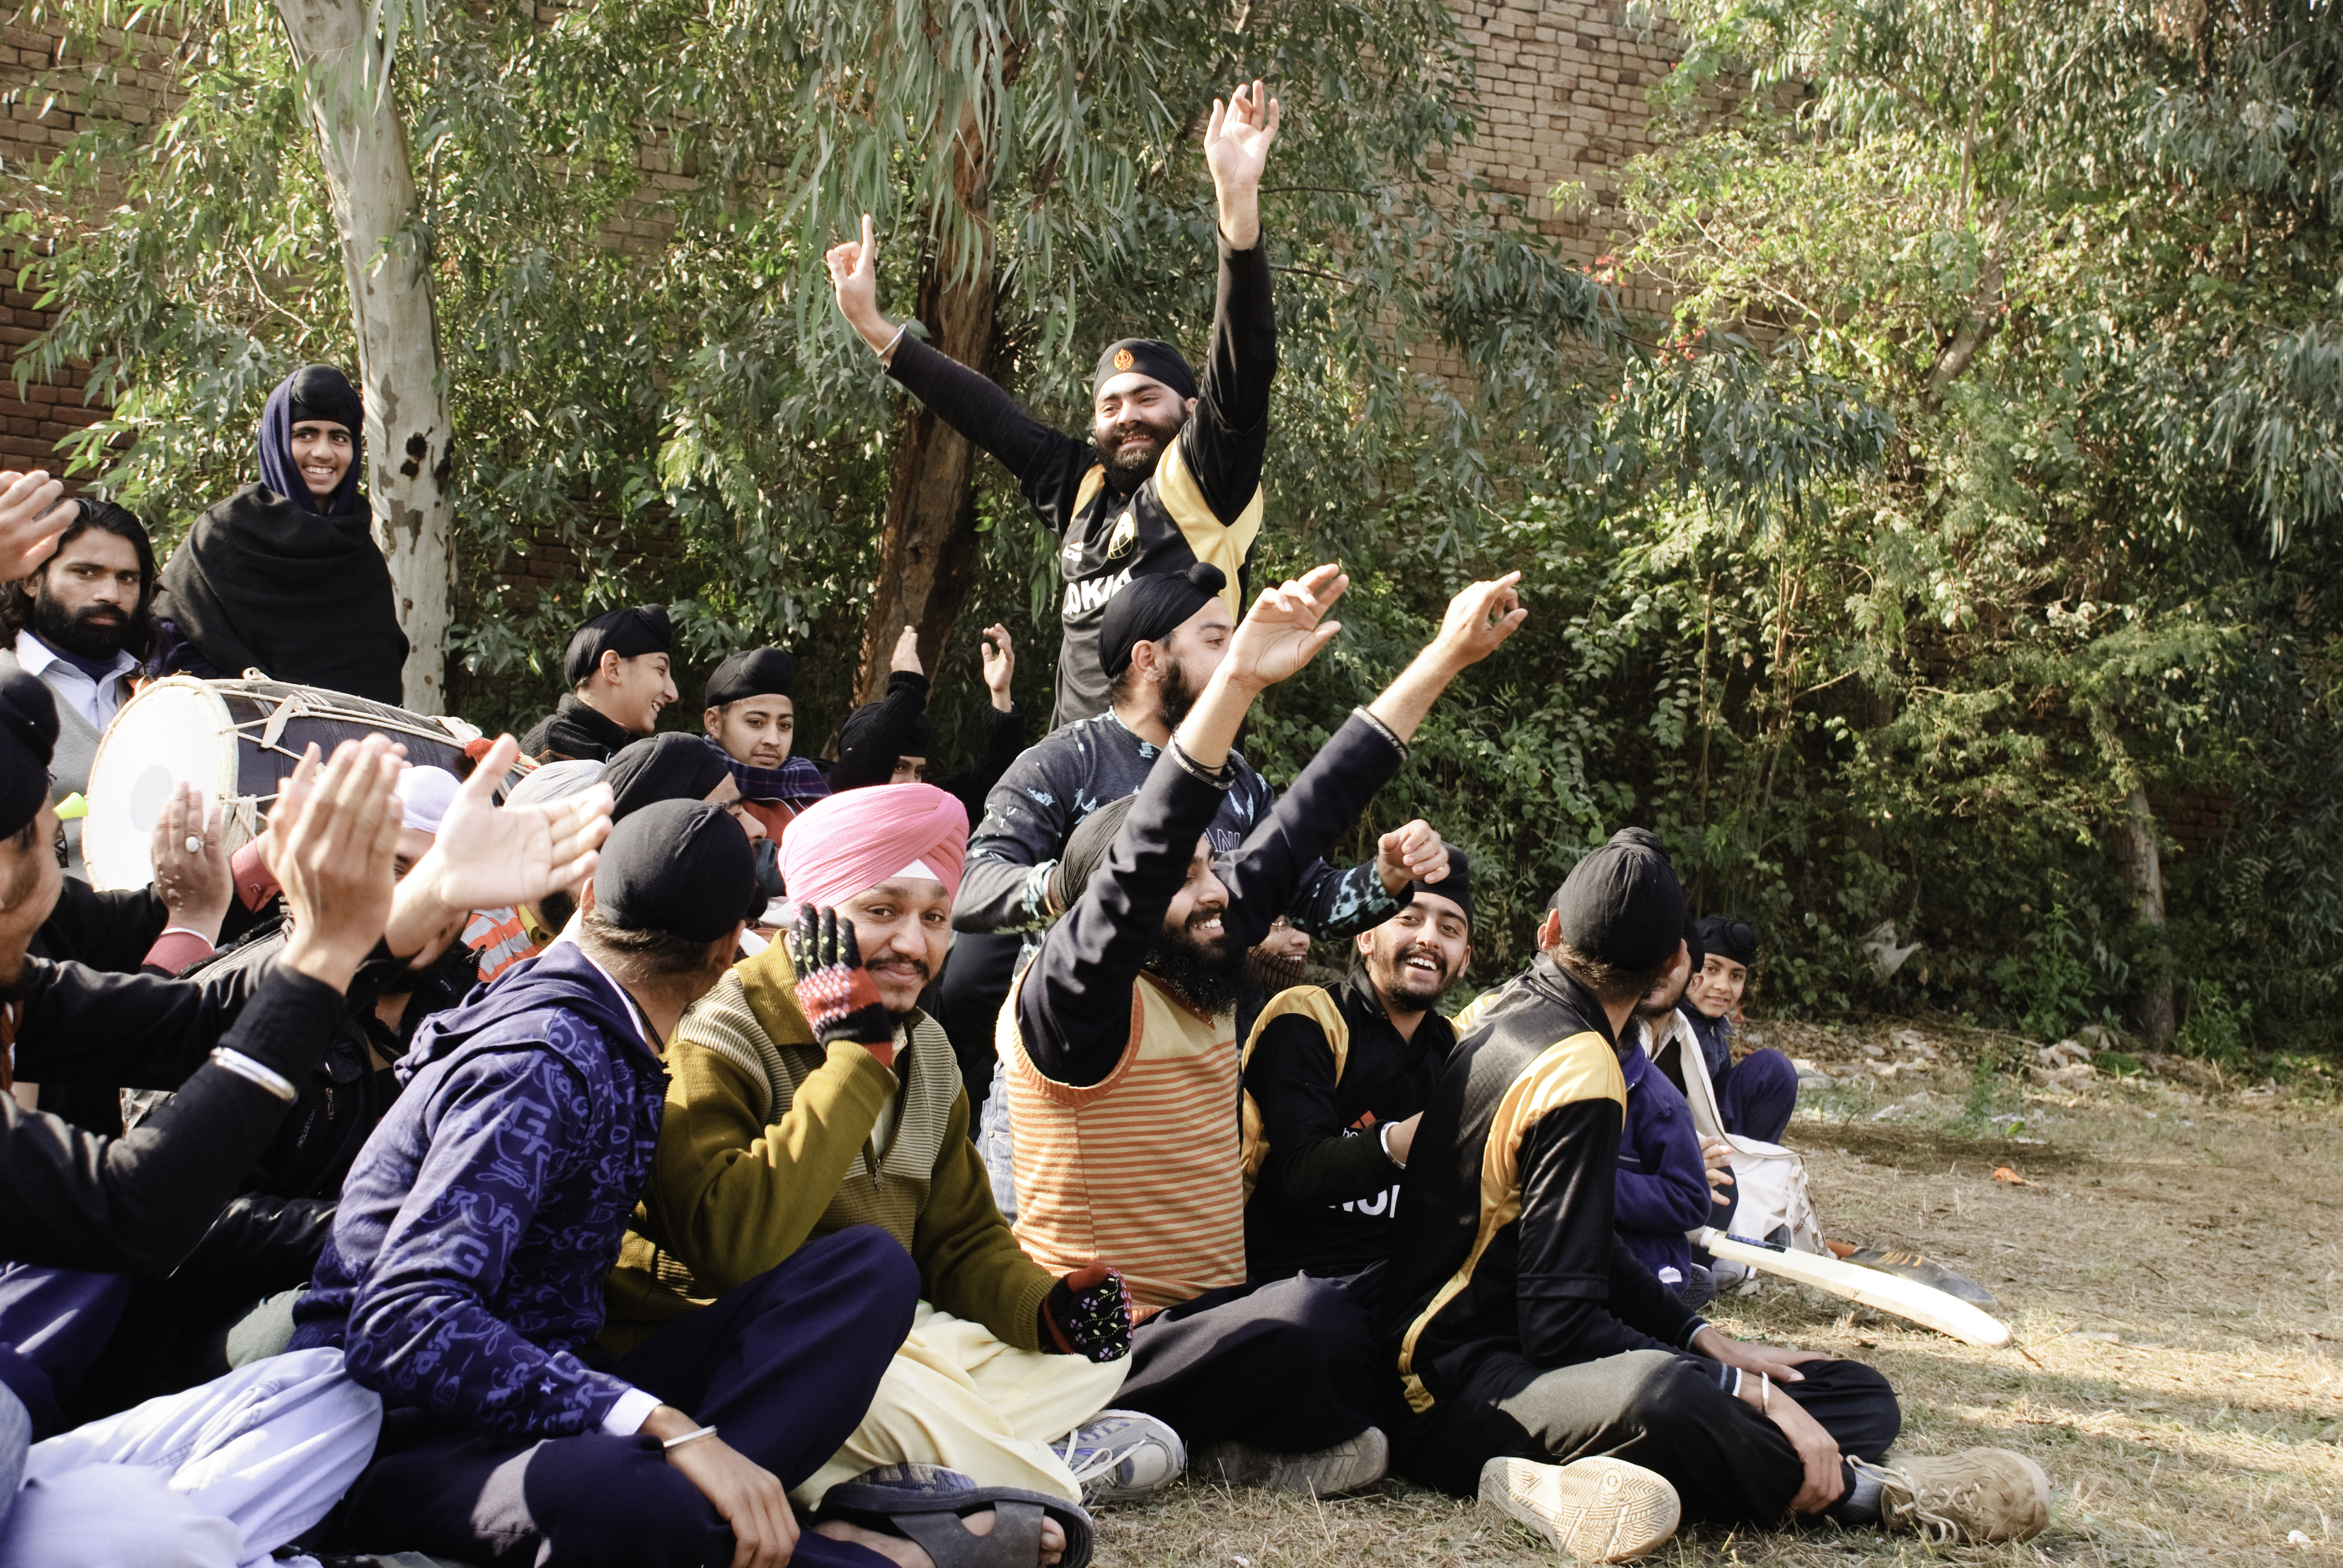 Players and spectators watch the final match. Photo credit: Faisal Saeed